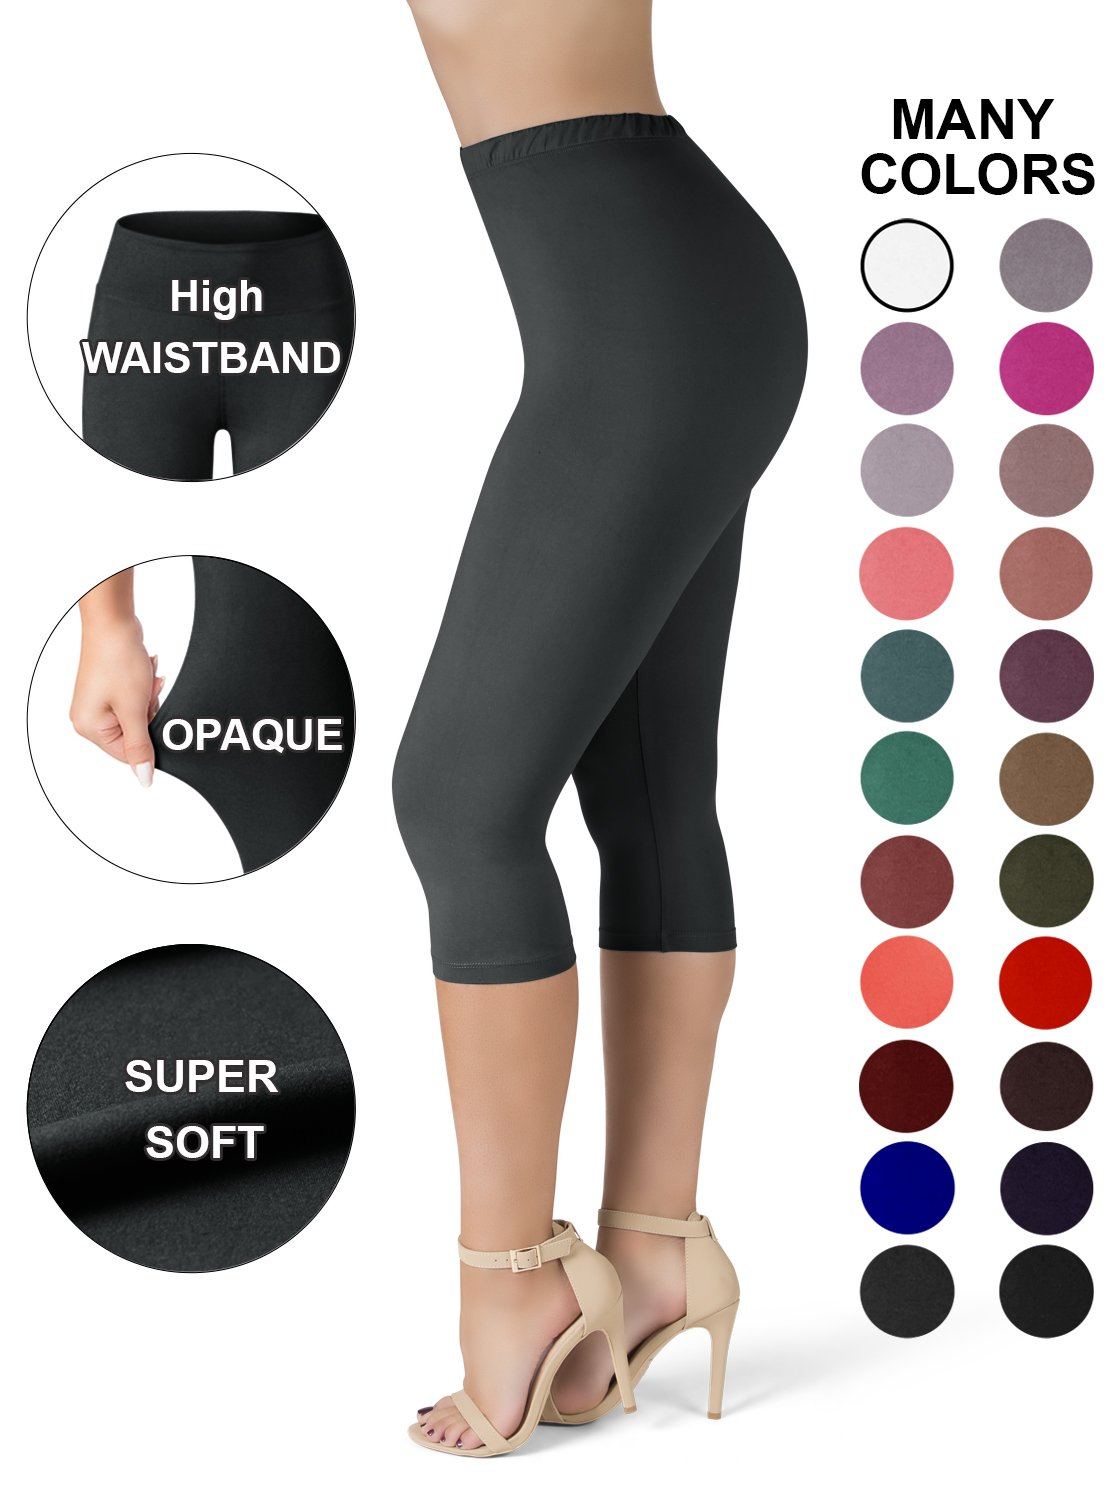 Sejora SATINA High Waisted Ultra Soft Capris Leggings - 20 Colors - Reg & Plus Size (One Size, Black)